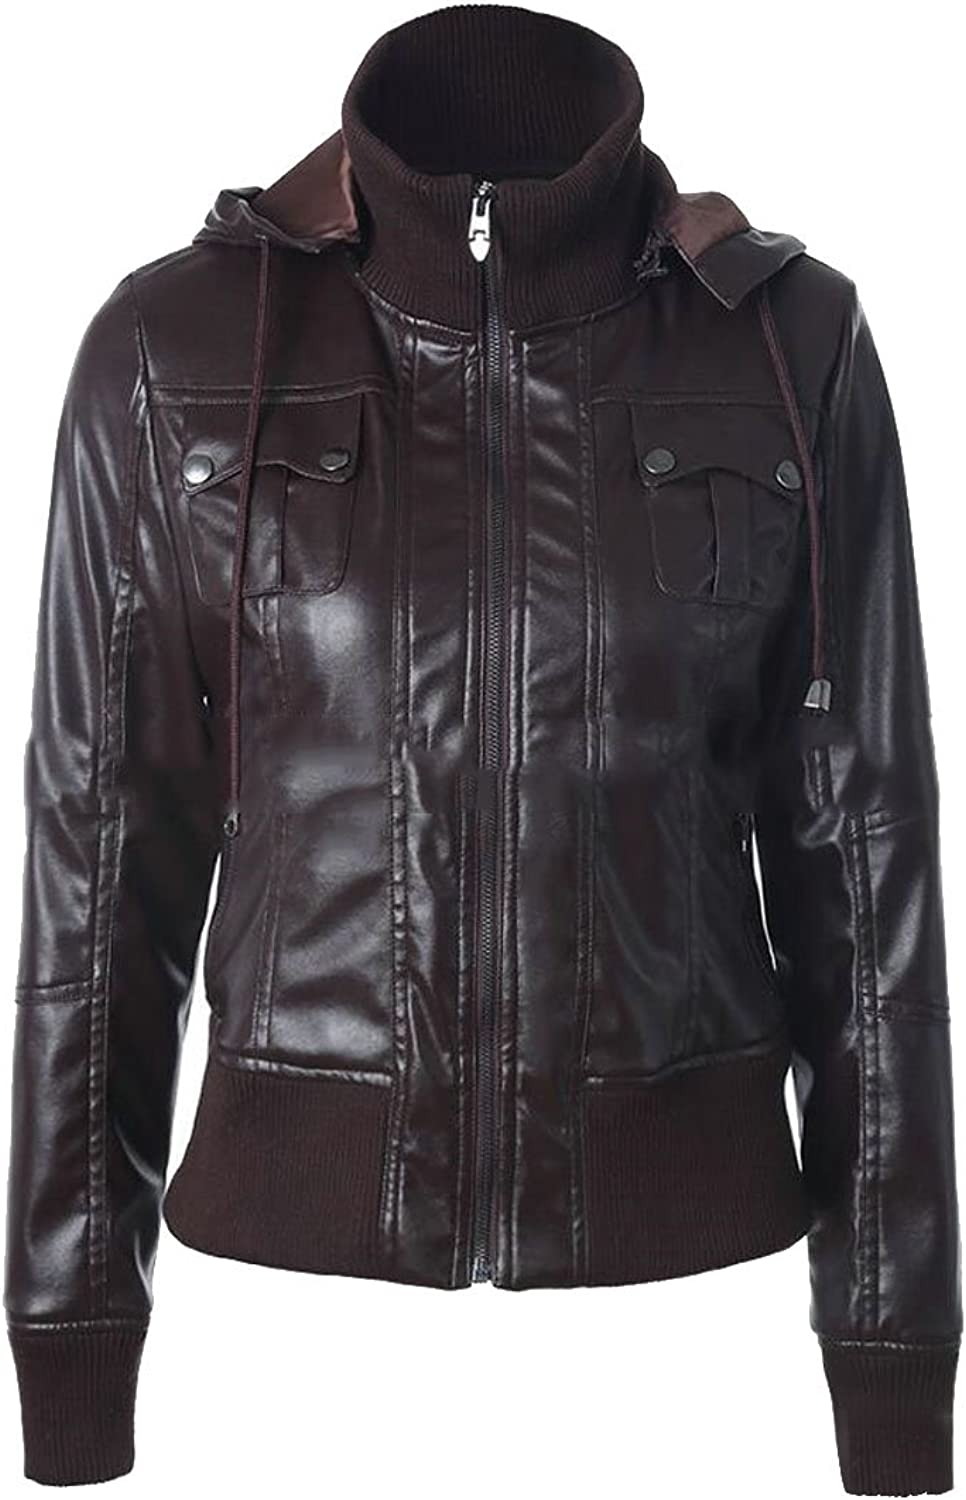 Fllay Womens Drawstring Biker Outdoor Zipper Motorcycle Faux Leather Jacket